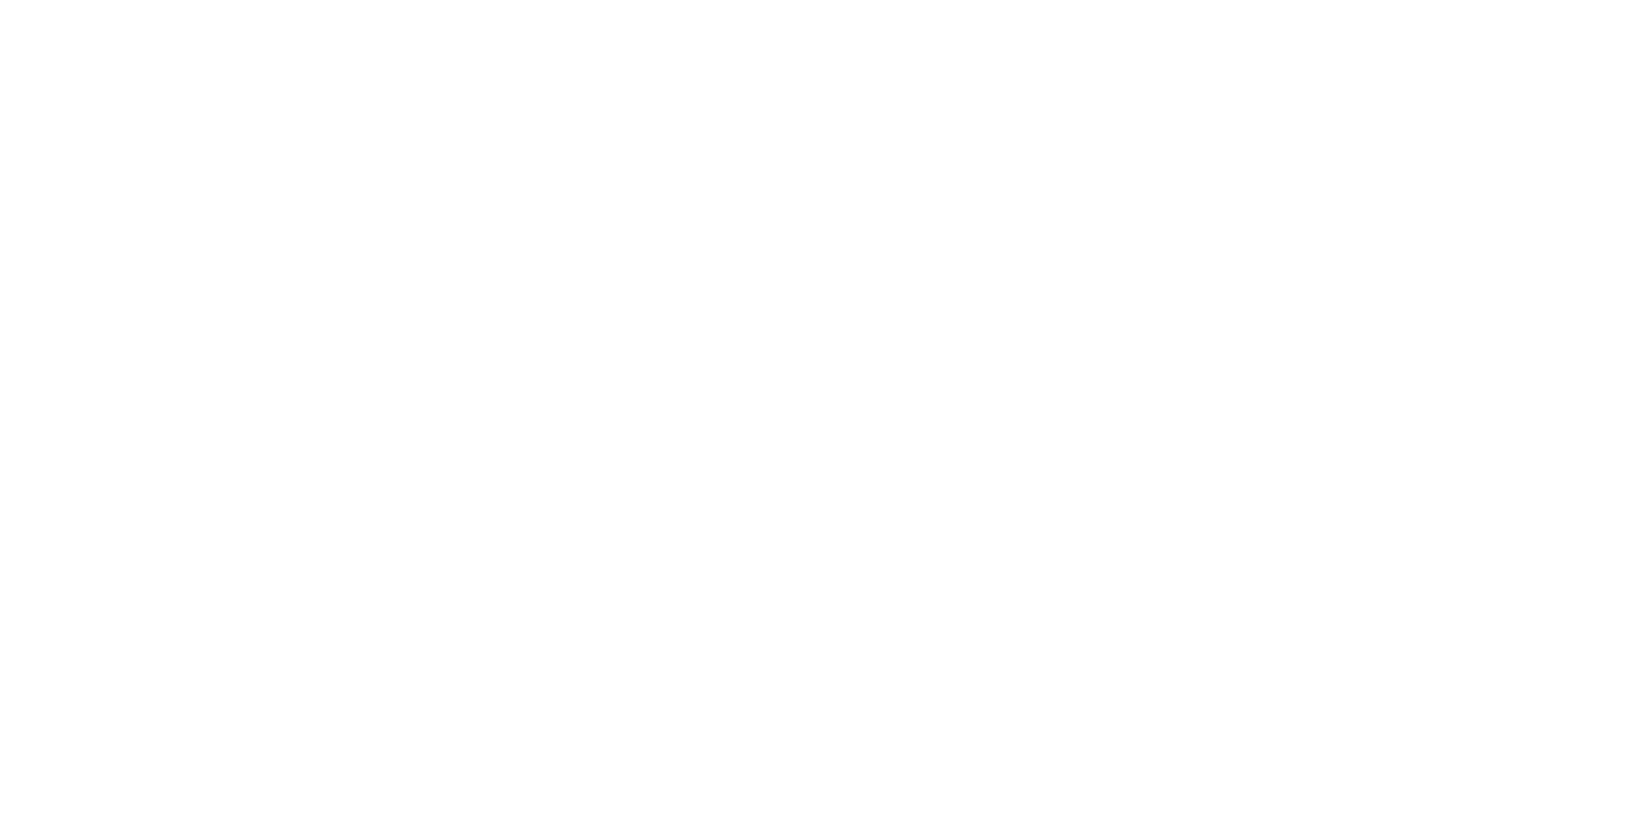 Solutions Group - Leading Real Estate Companies of the World